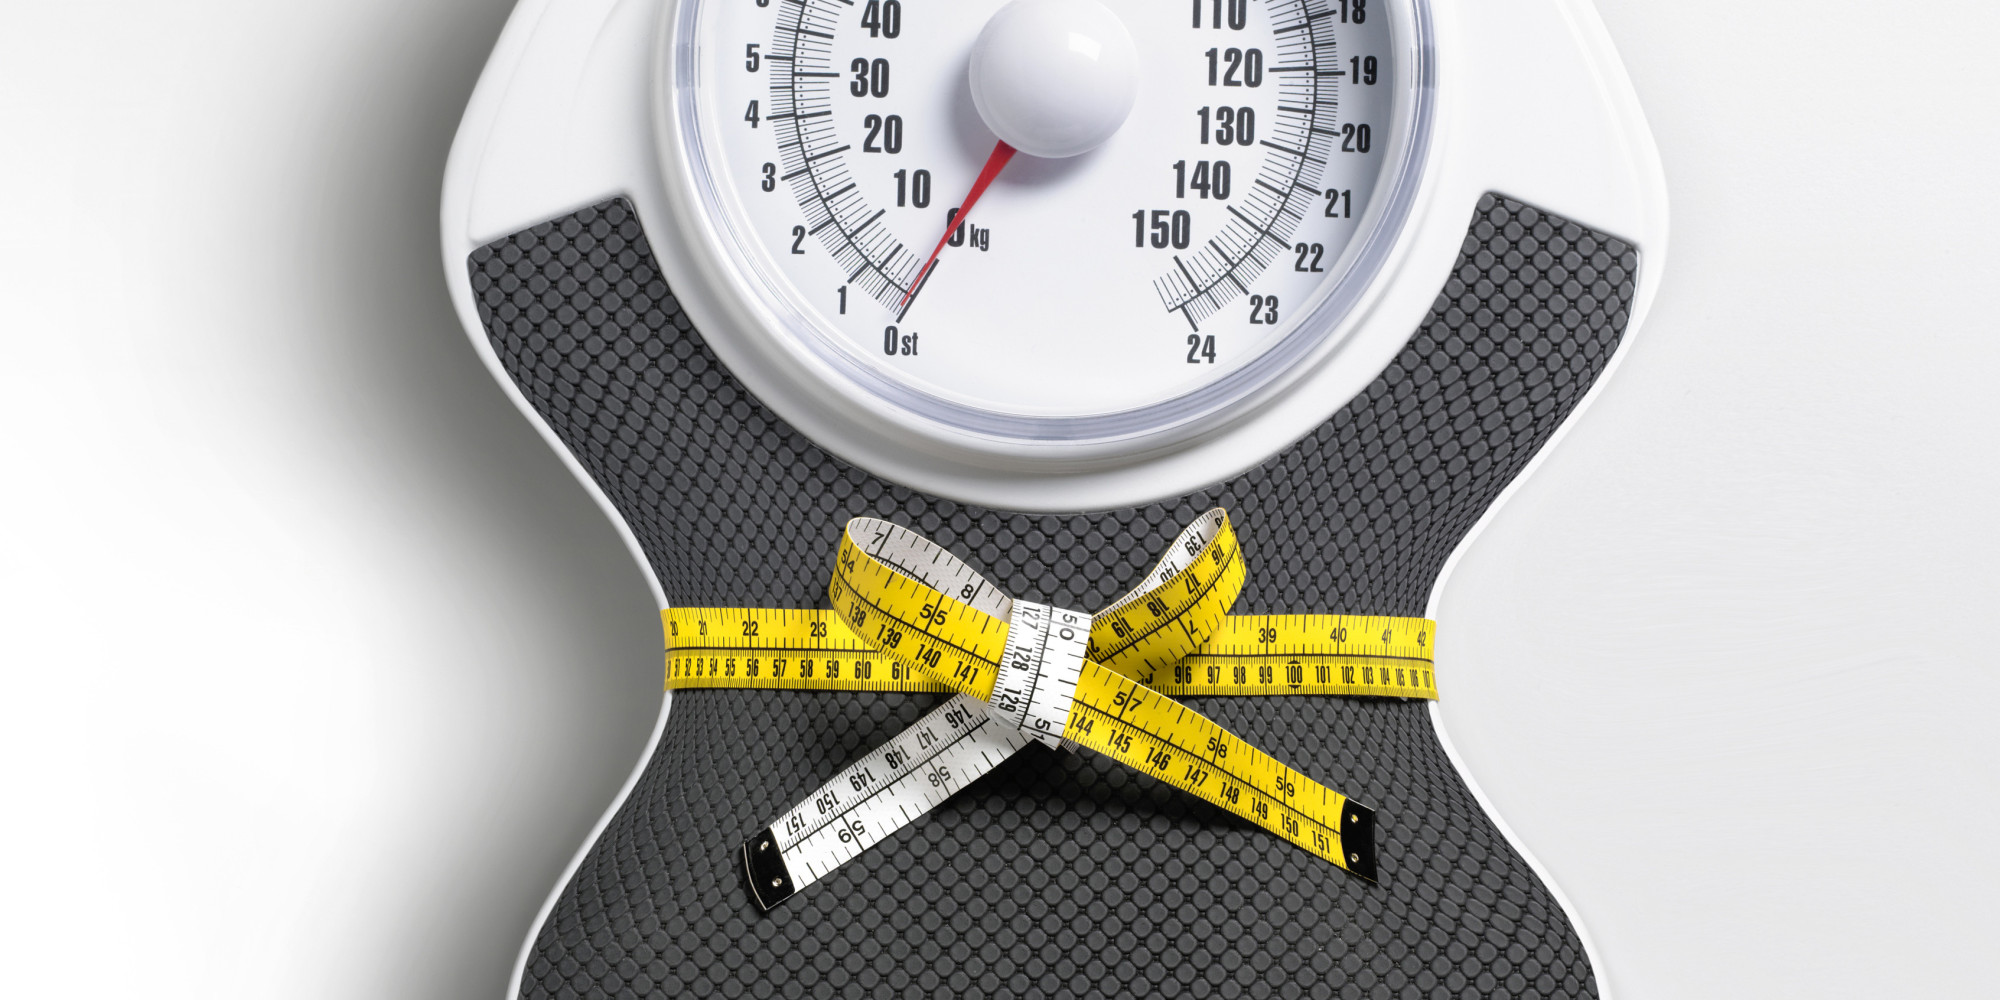 3 pounds of Weight Loss Without Diet and exercise